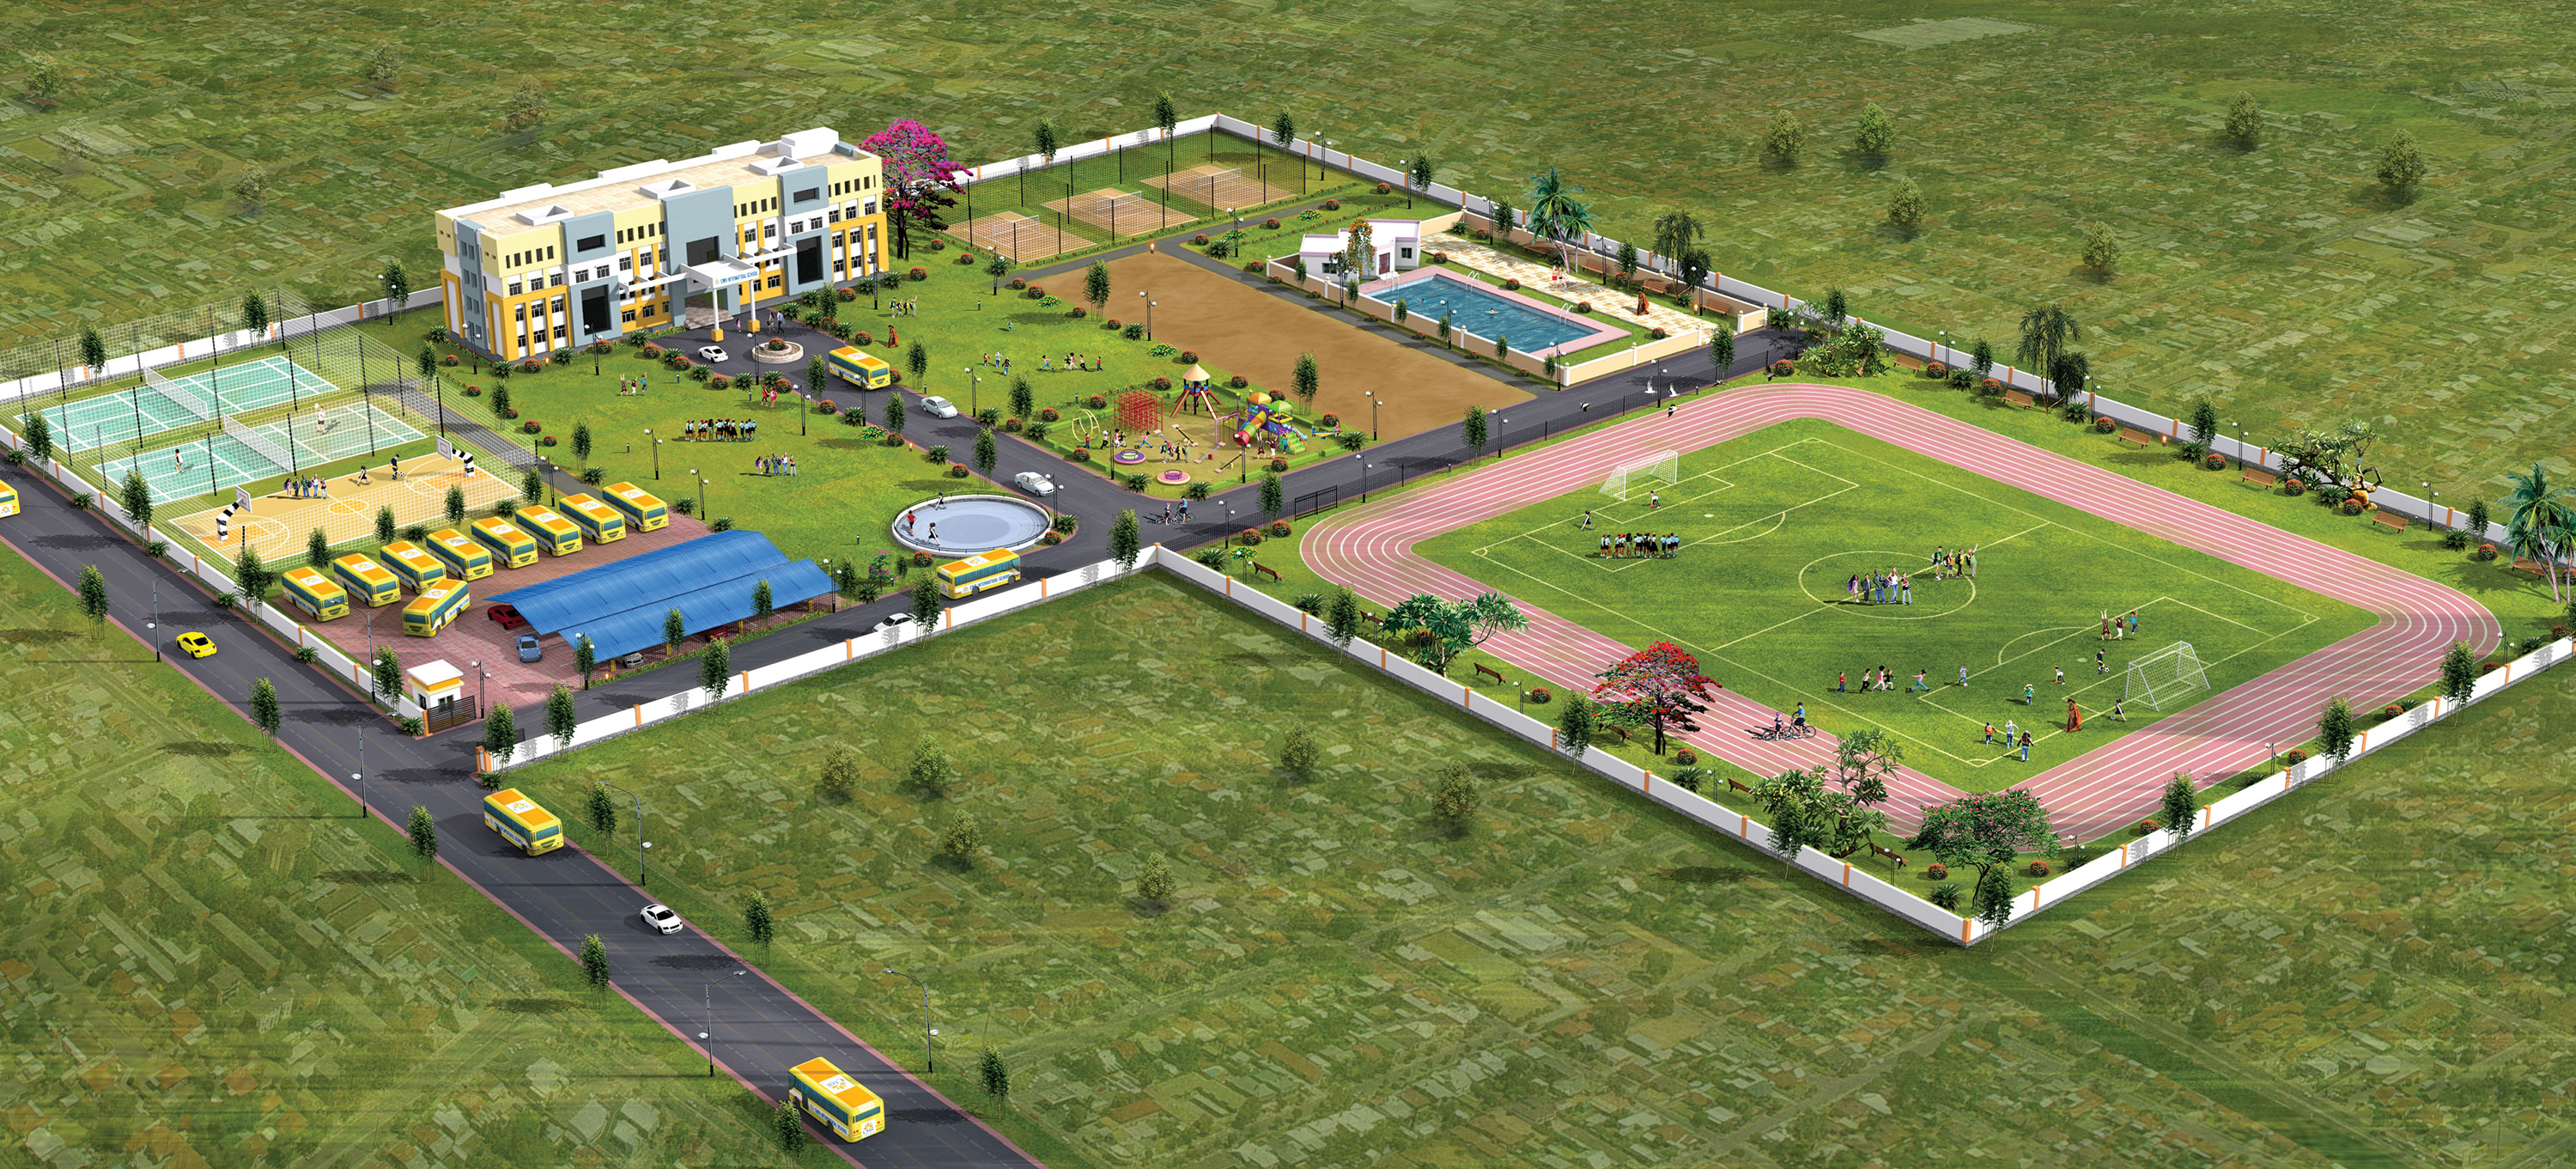 ARIAL VIEW OF CMR CAMPUS